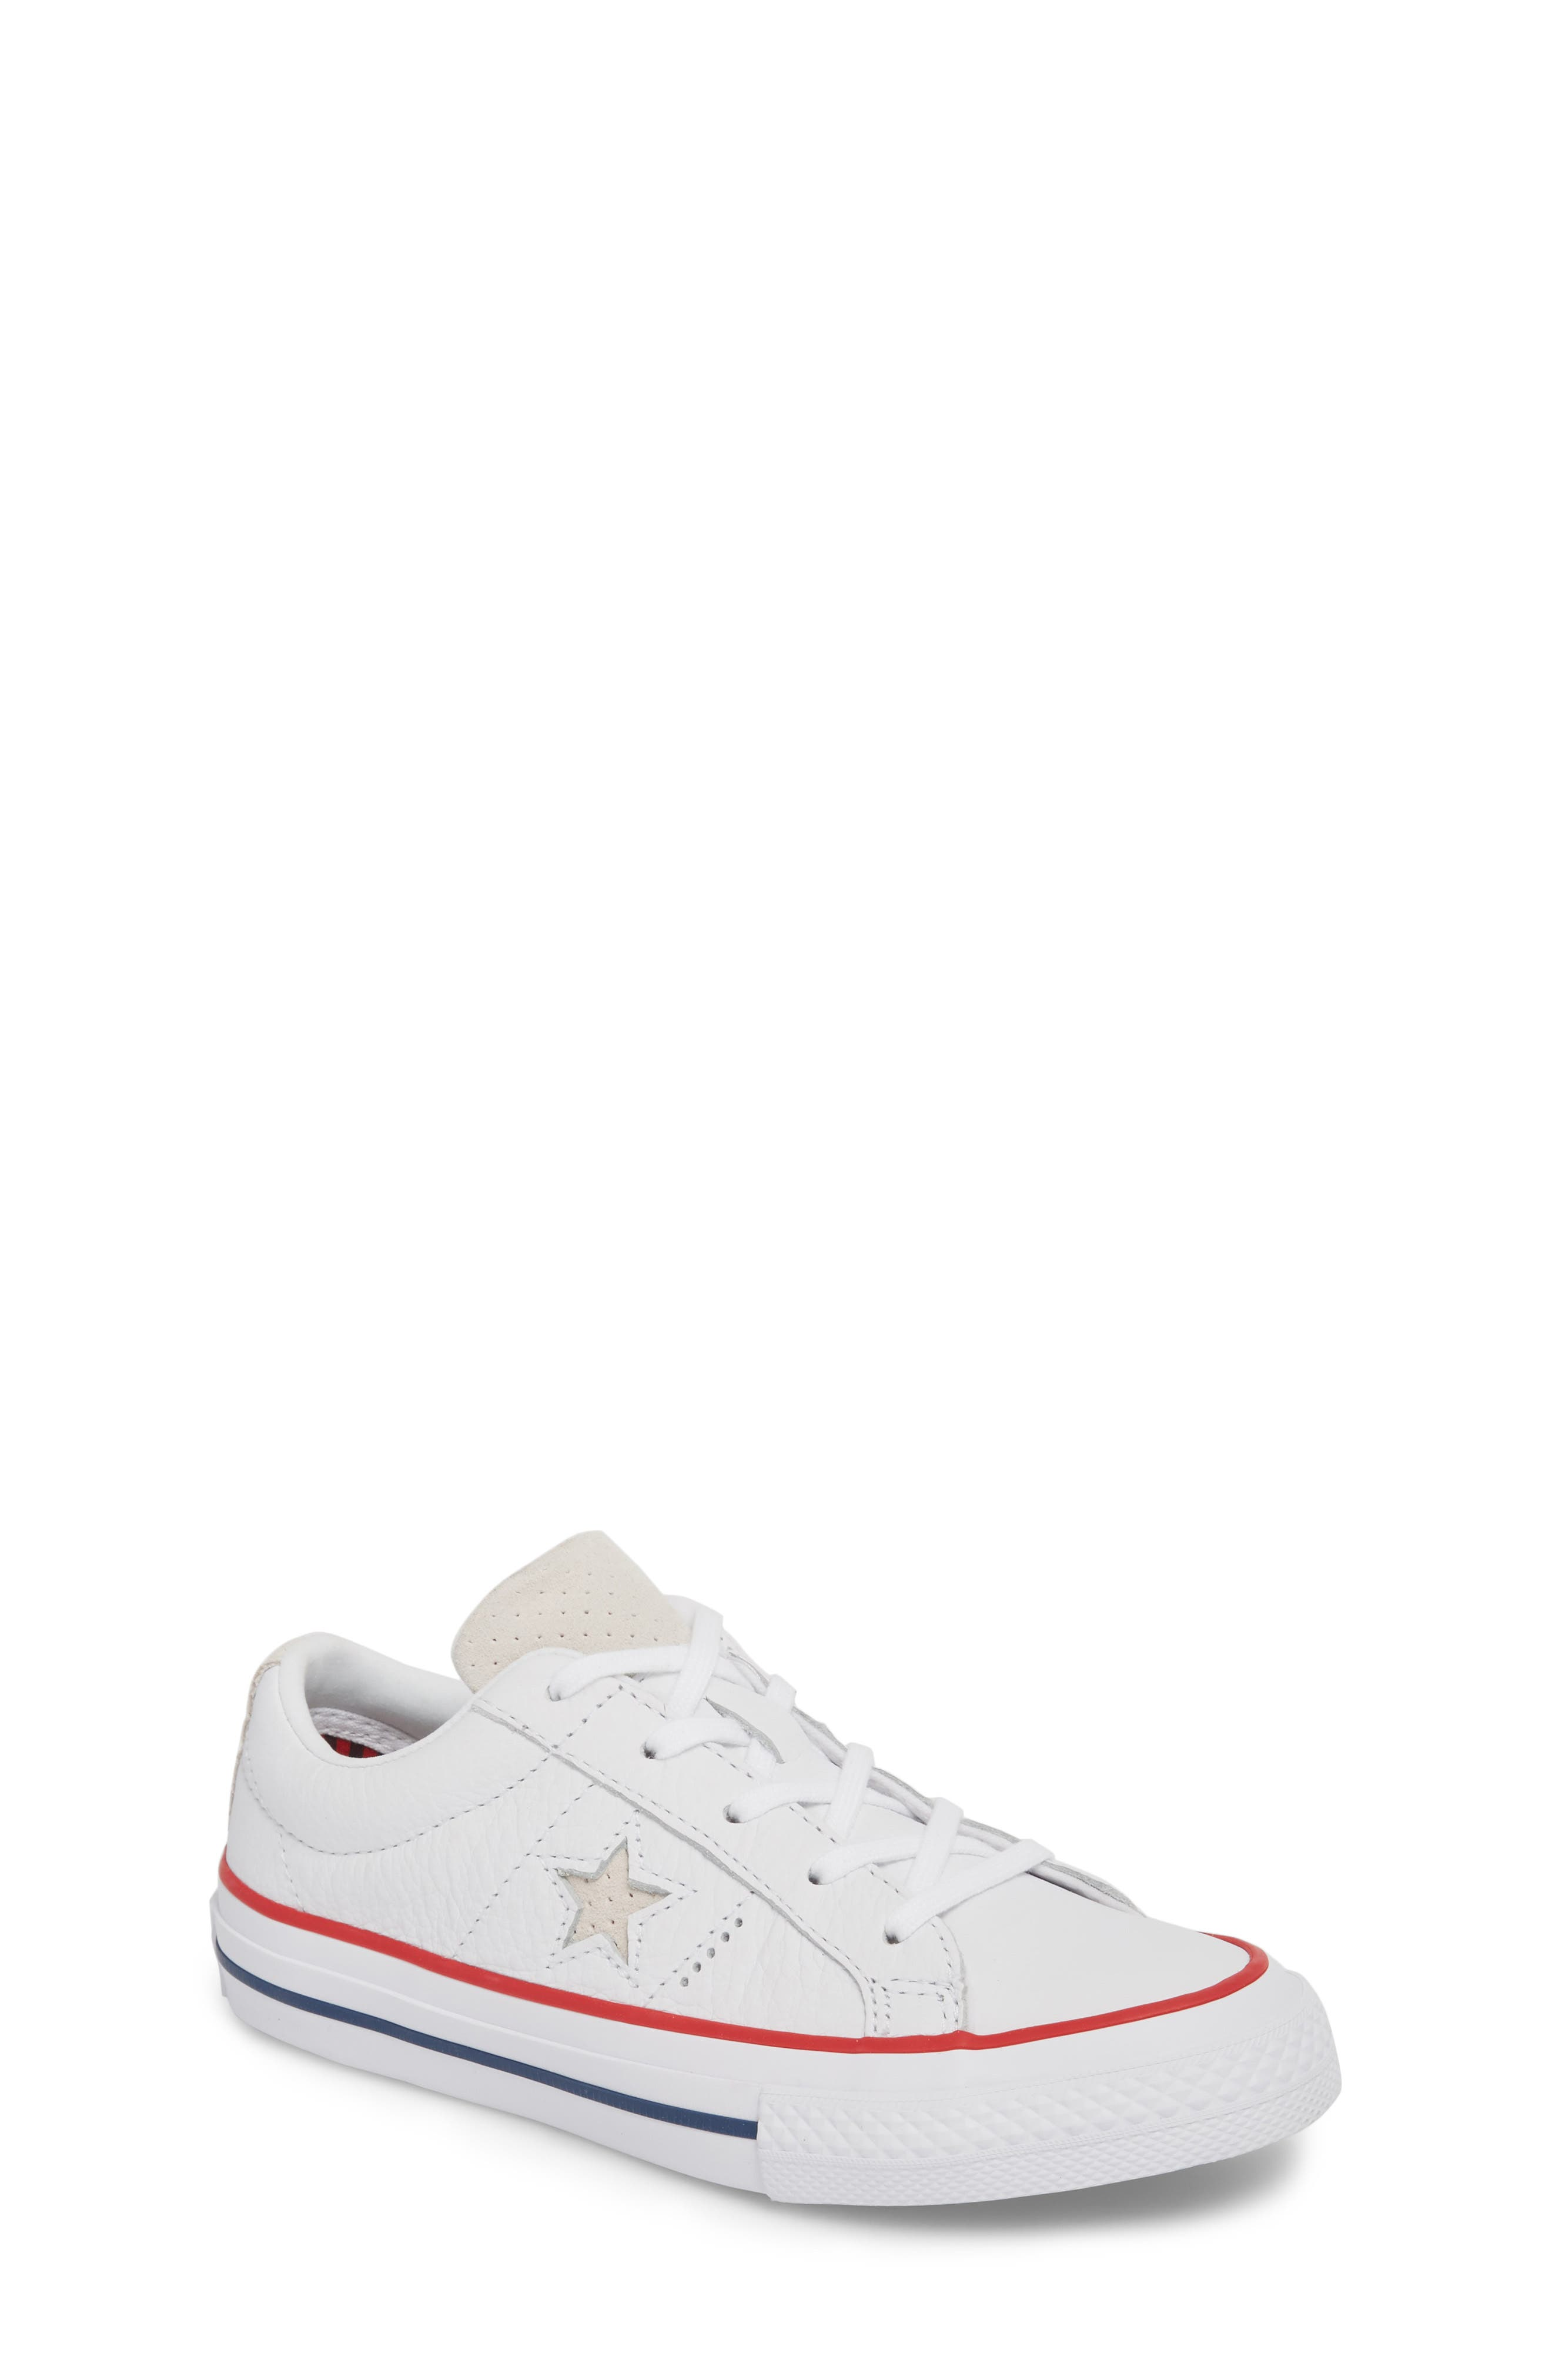 Chuck Taylor<sup>®</sup> All Star<sup>®</sup> New Heritage Oxford Sneaker,                         Main,                         color, White